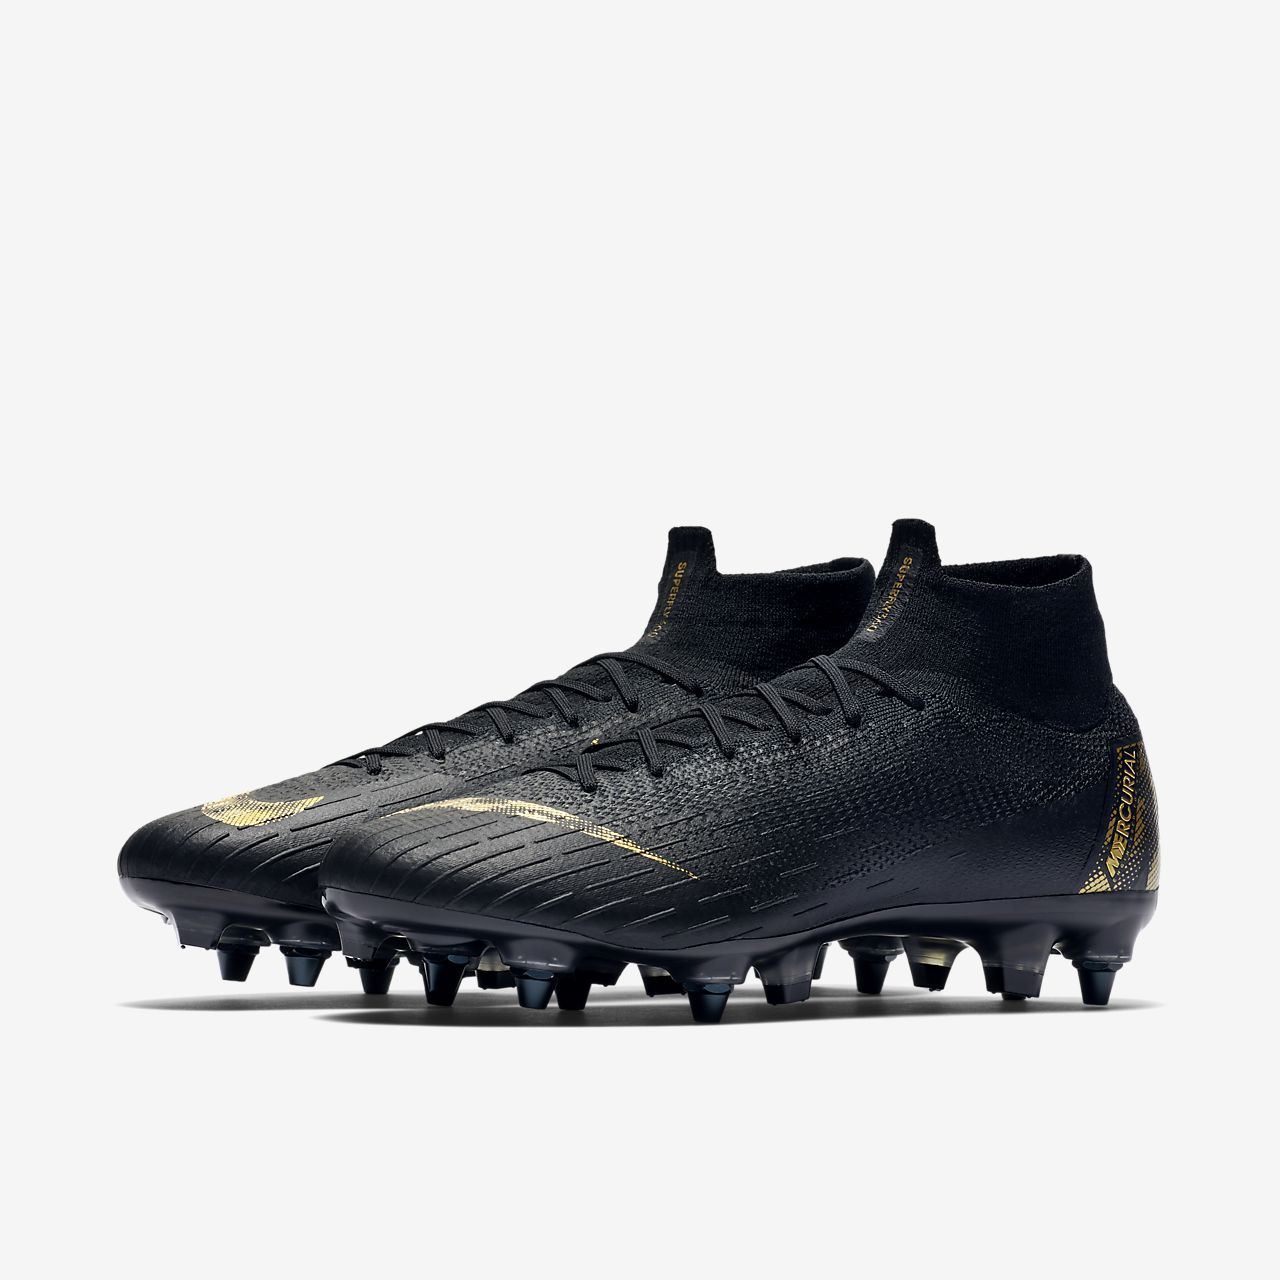 best authentic a47a0 c5897 ... Nike Mercurial Superfly 360 Elite SG-PRO Anti-Clog Soft-Ground Football  Boot